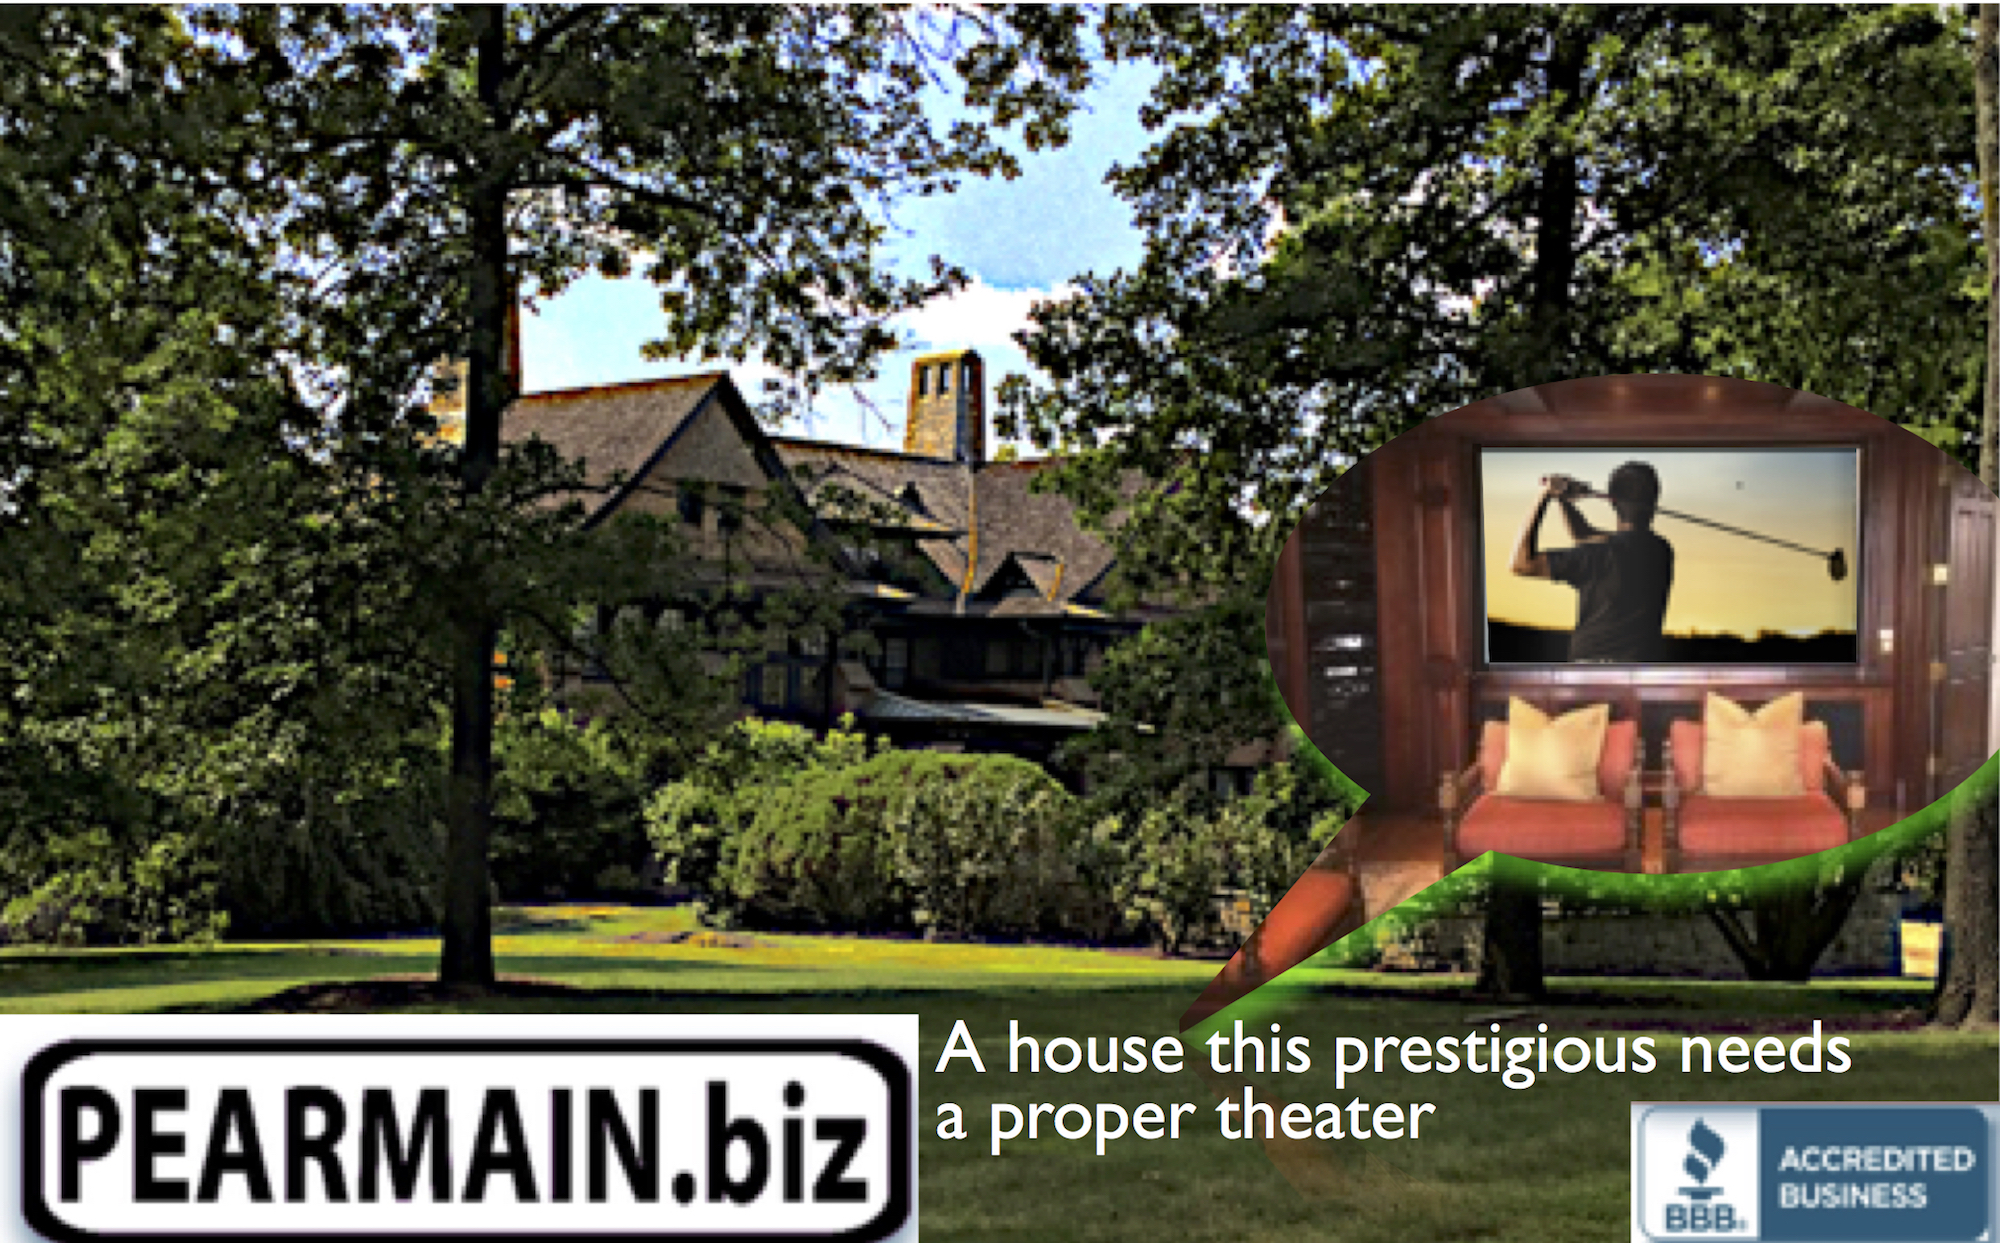 A house this prestigious needs a proper theater